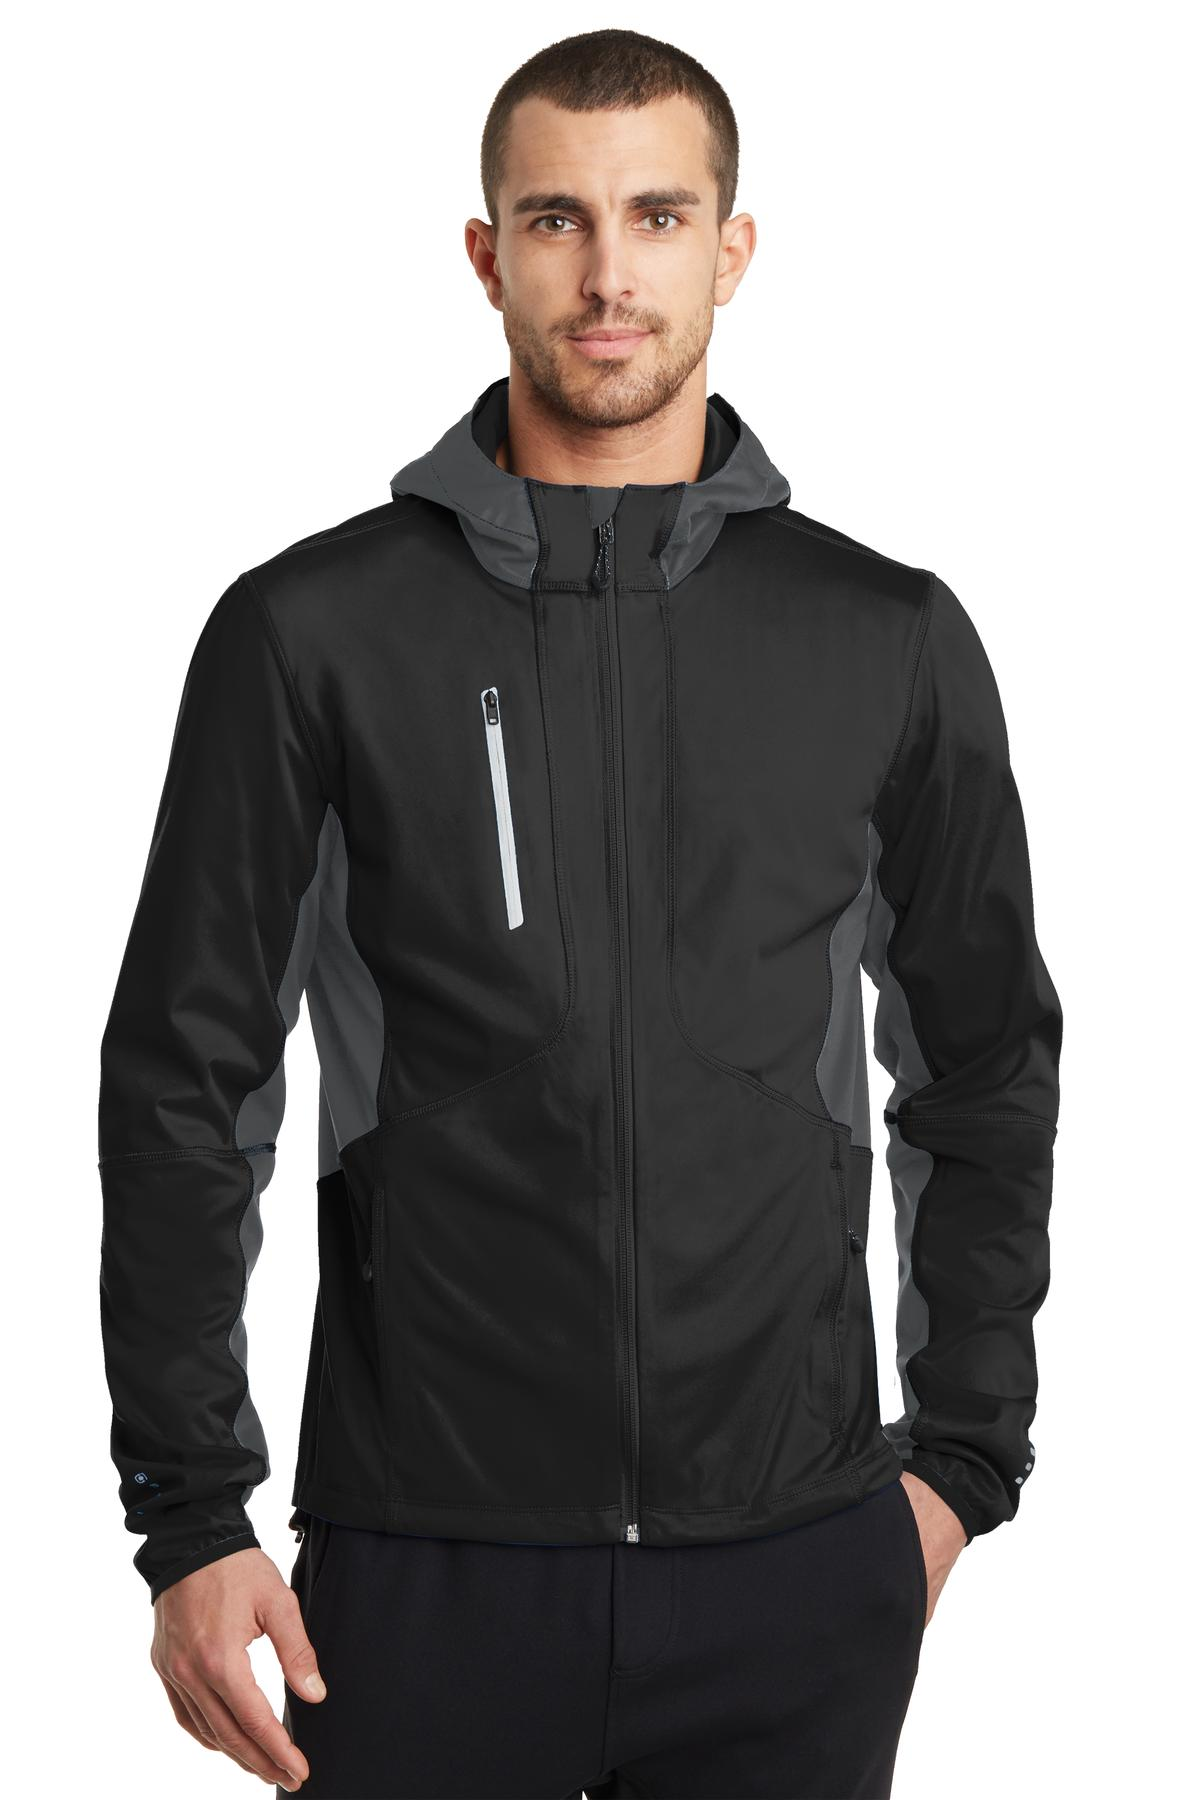 Outerwear-Athletic-Warm-Ups-31